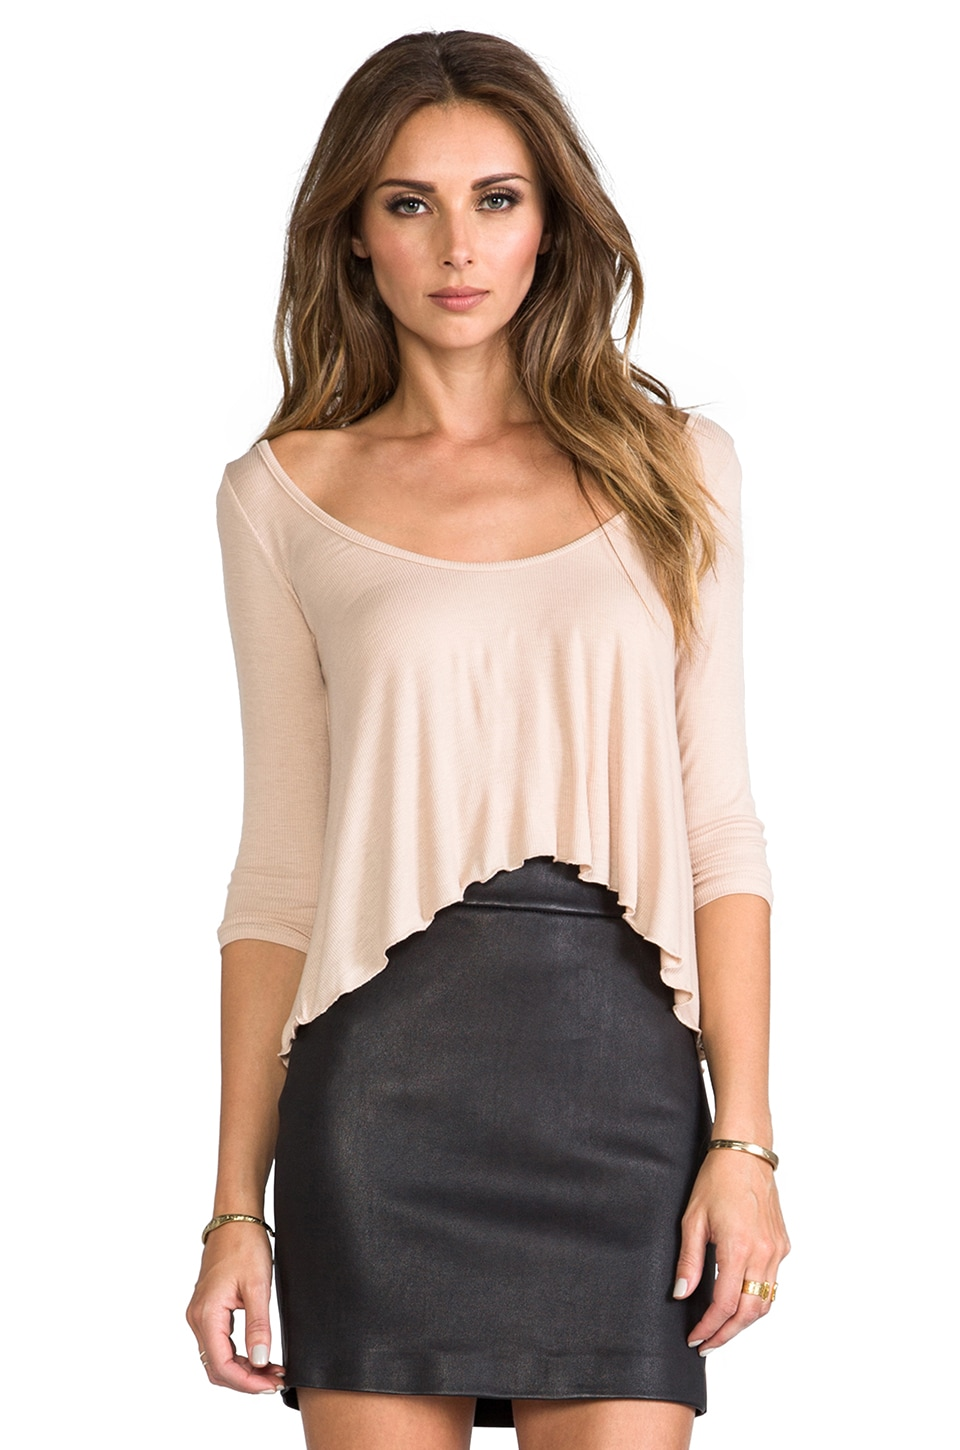 Rachel Pally Rib 3/4 Sleeve Cropped Top in Bamboo